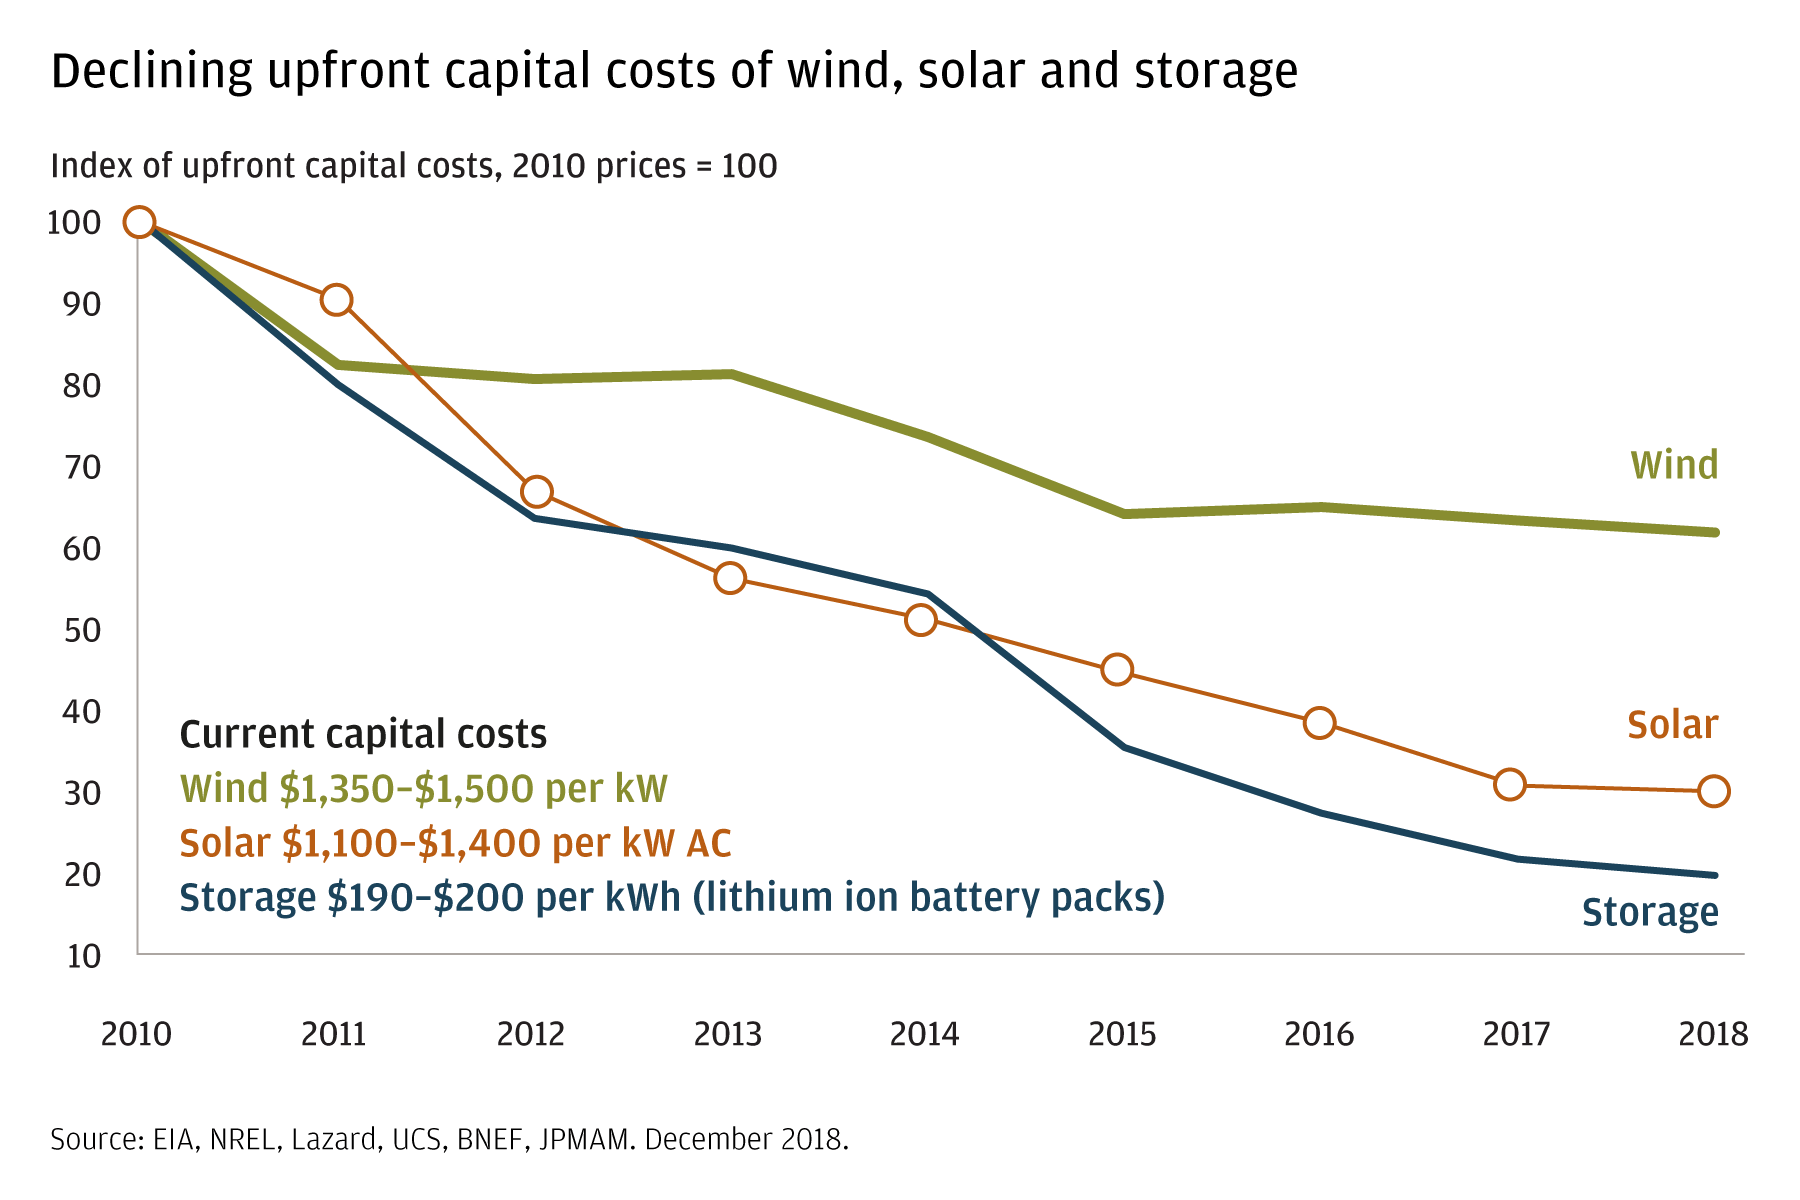 This three-line chart shows the declining upfront costs of wind, solar, and storage.